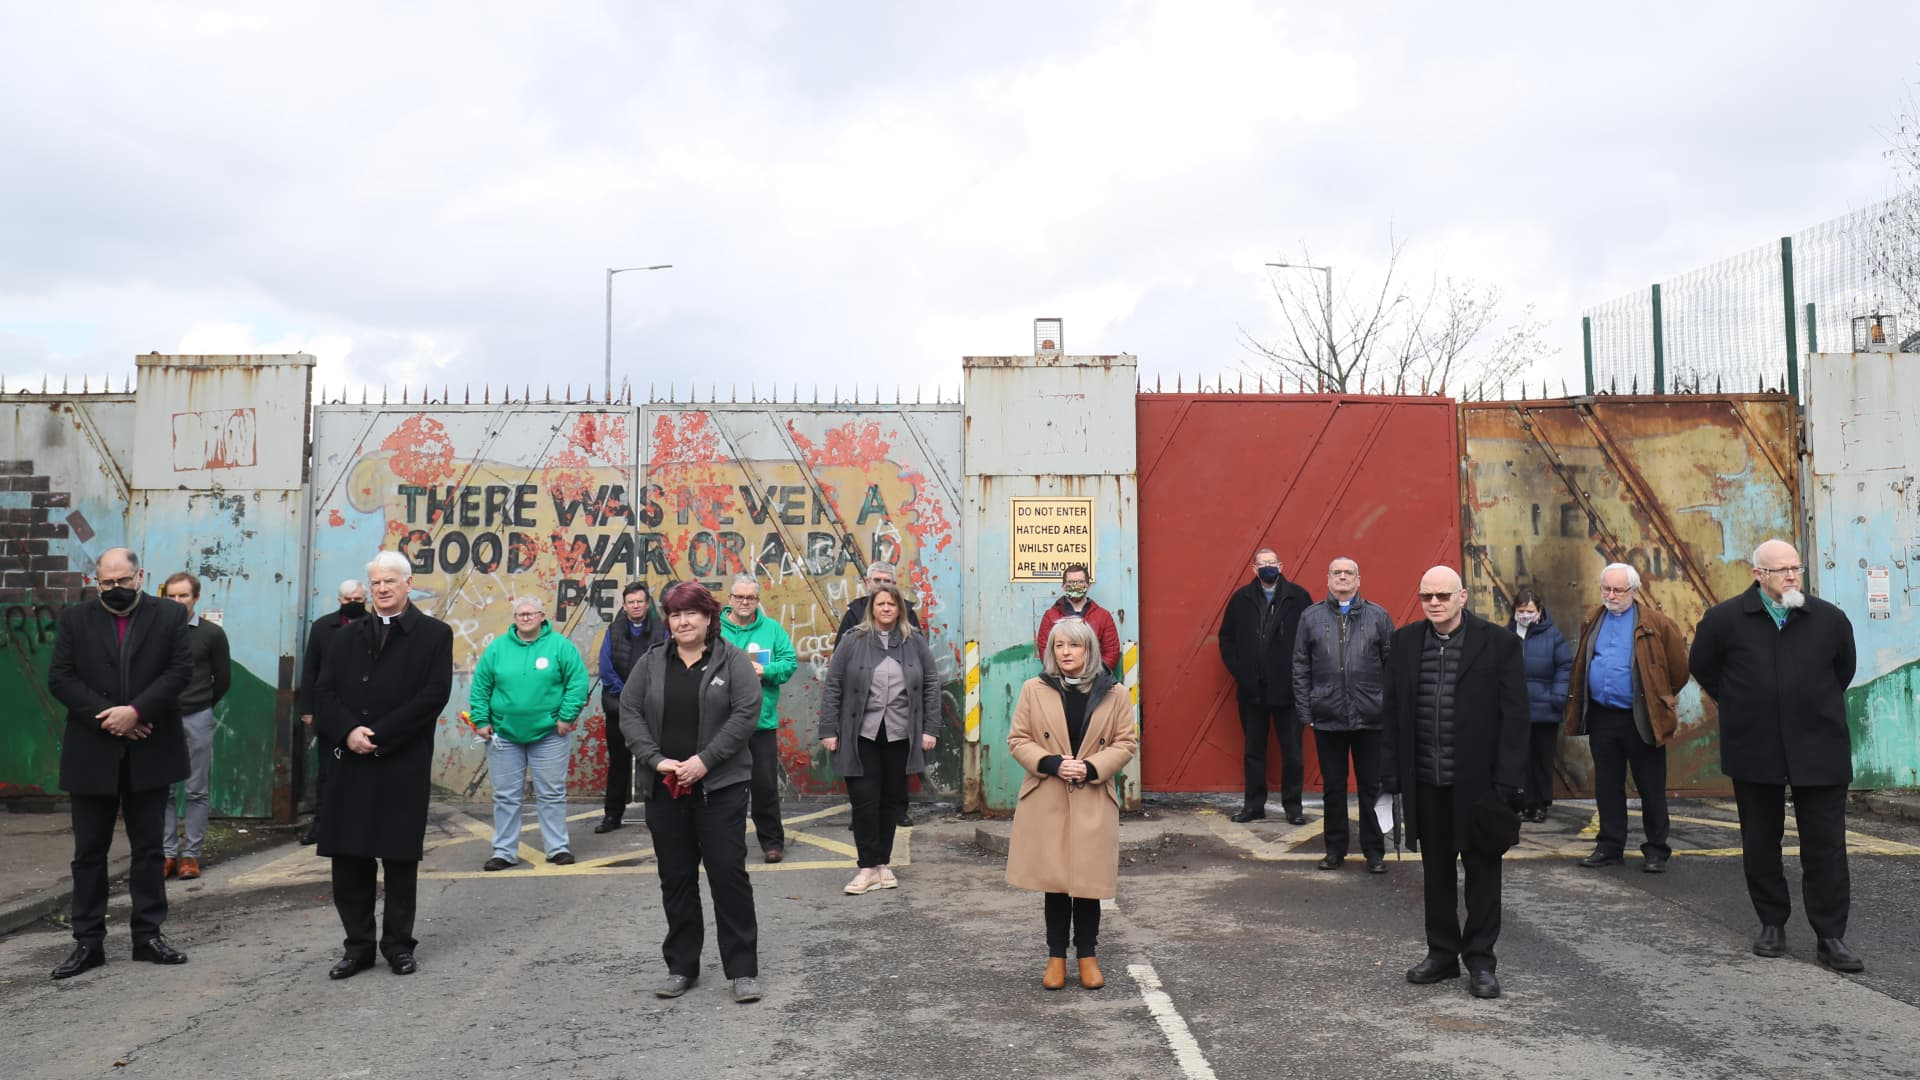 BELFAST - Members of the clergy at the peace wall on Lanark Way in Belfast following a Ecumencial service in response to the recent riots and violence in the city